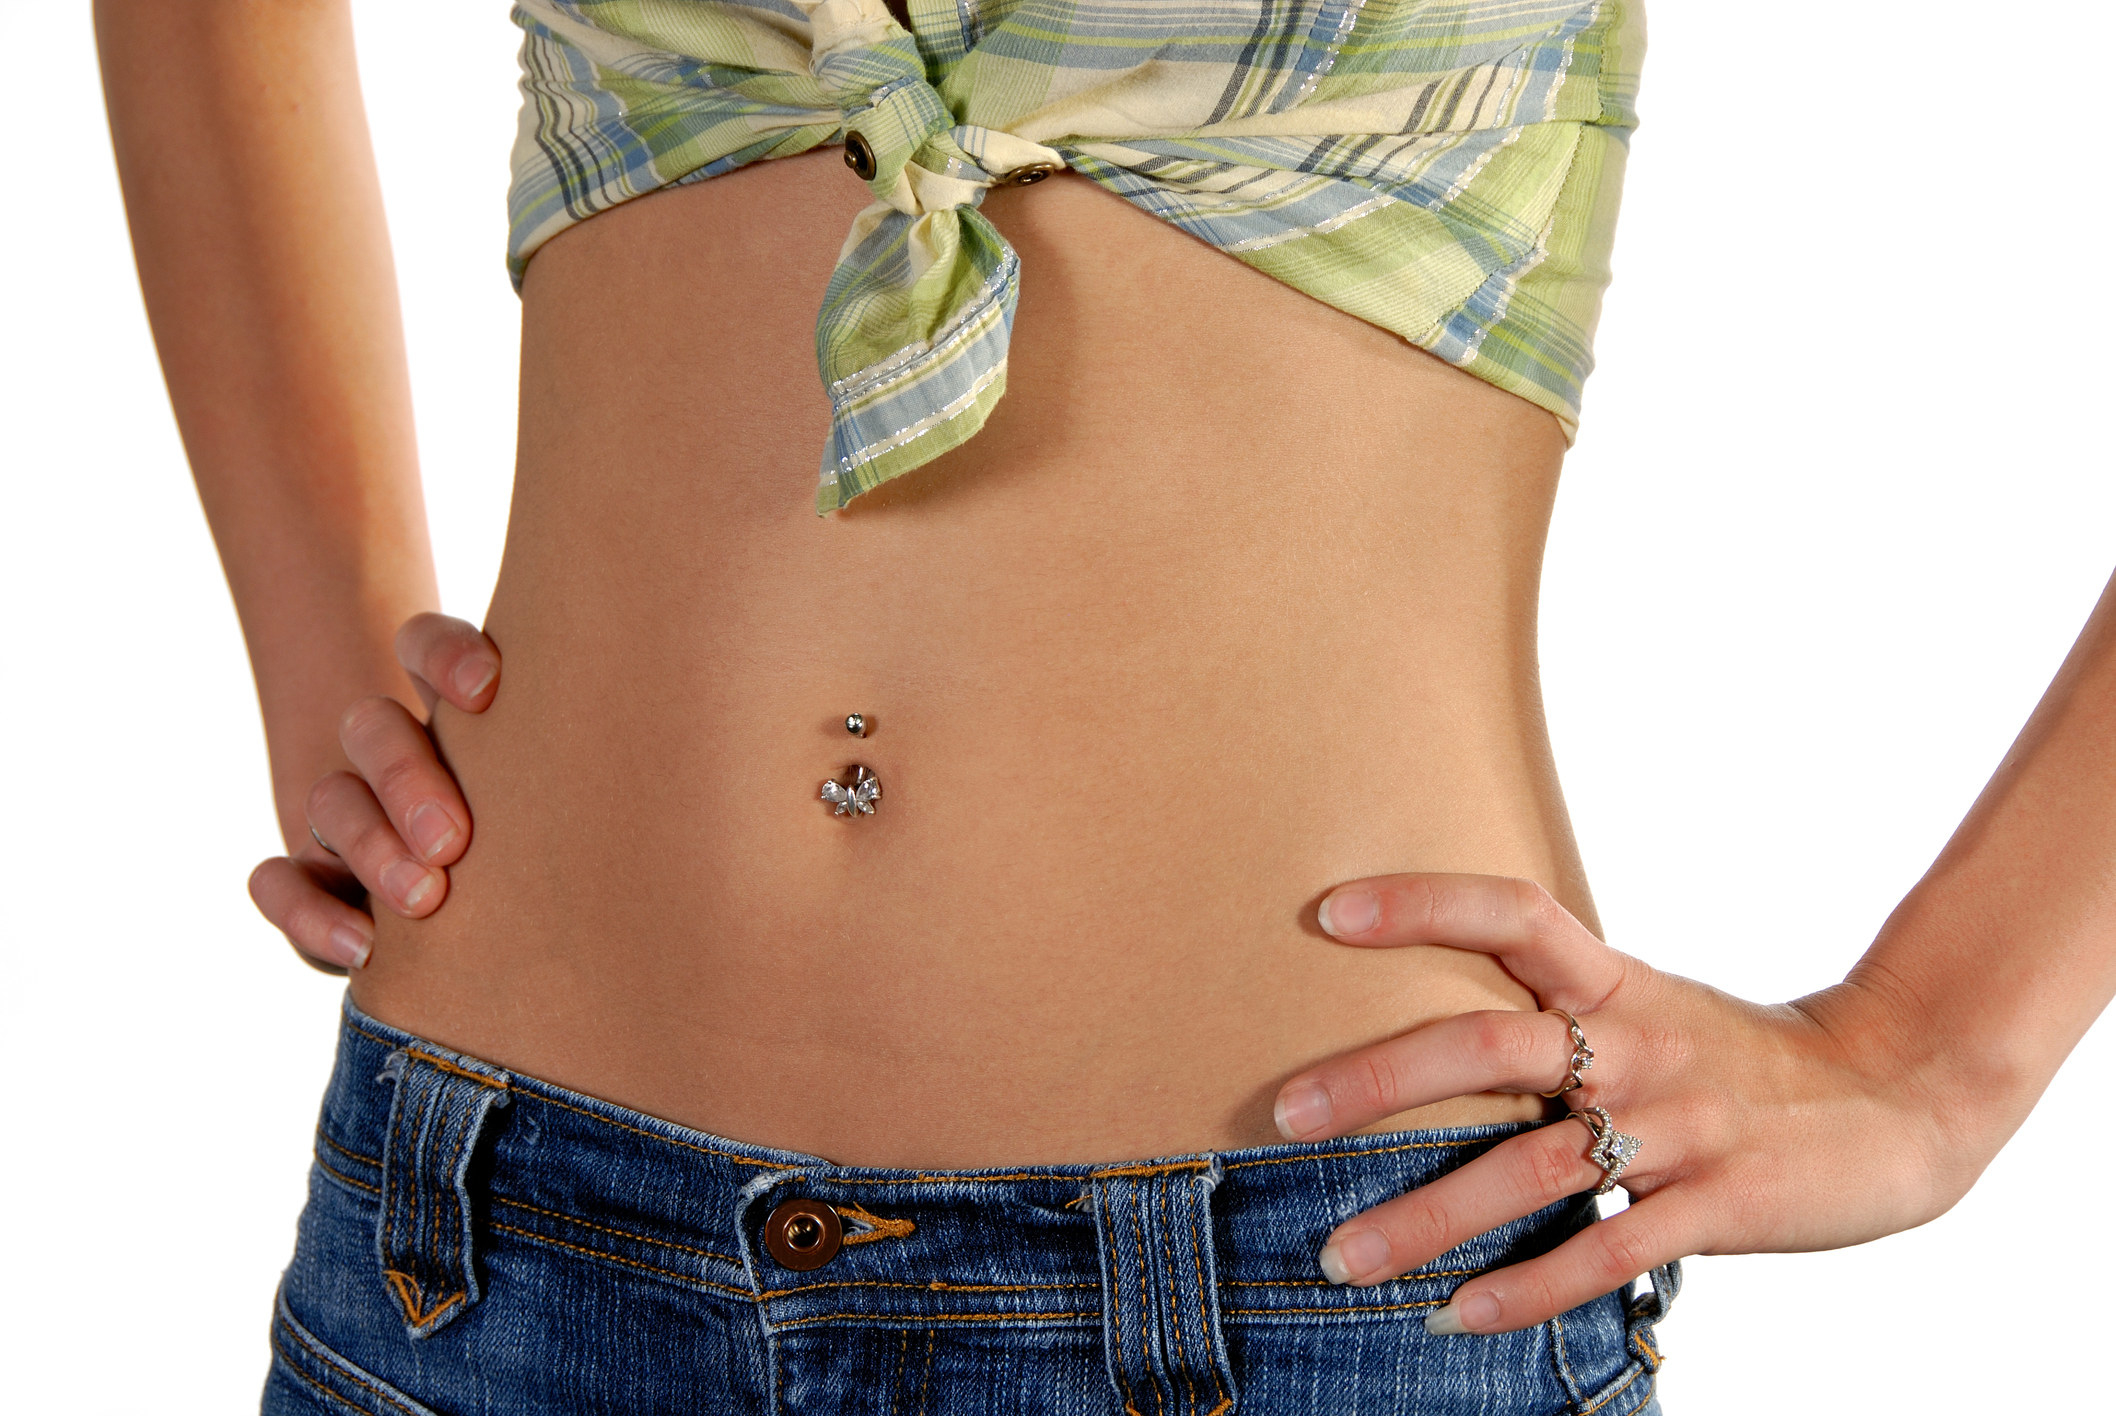 A photo of a woman in a tied up top and lowrise jeans exposing her pierced belly buttin